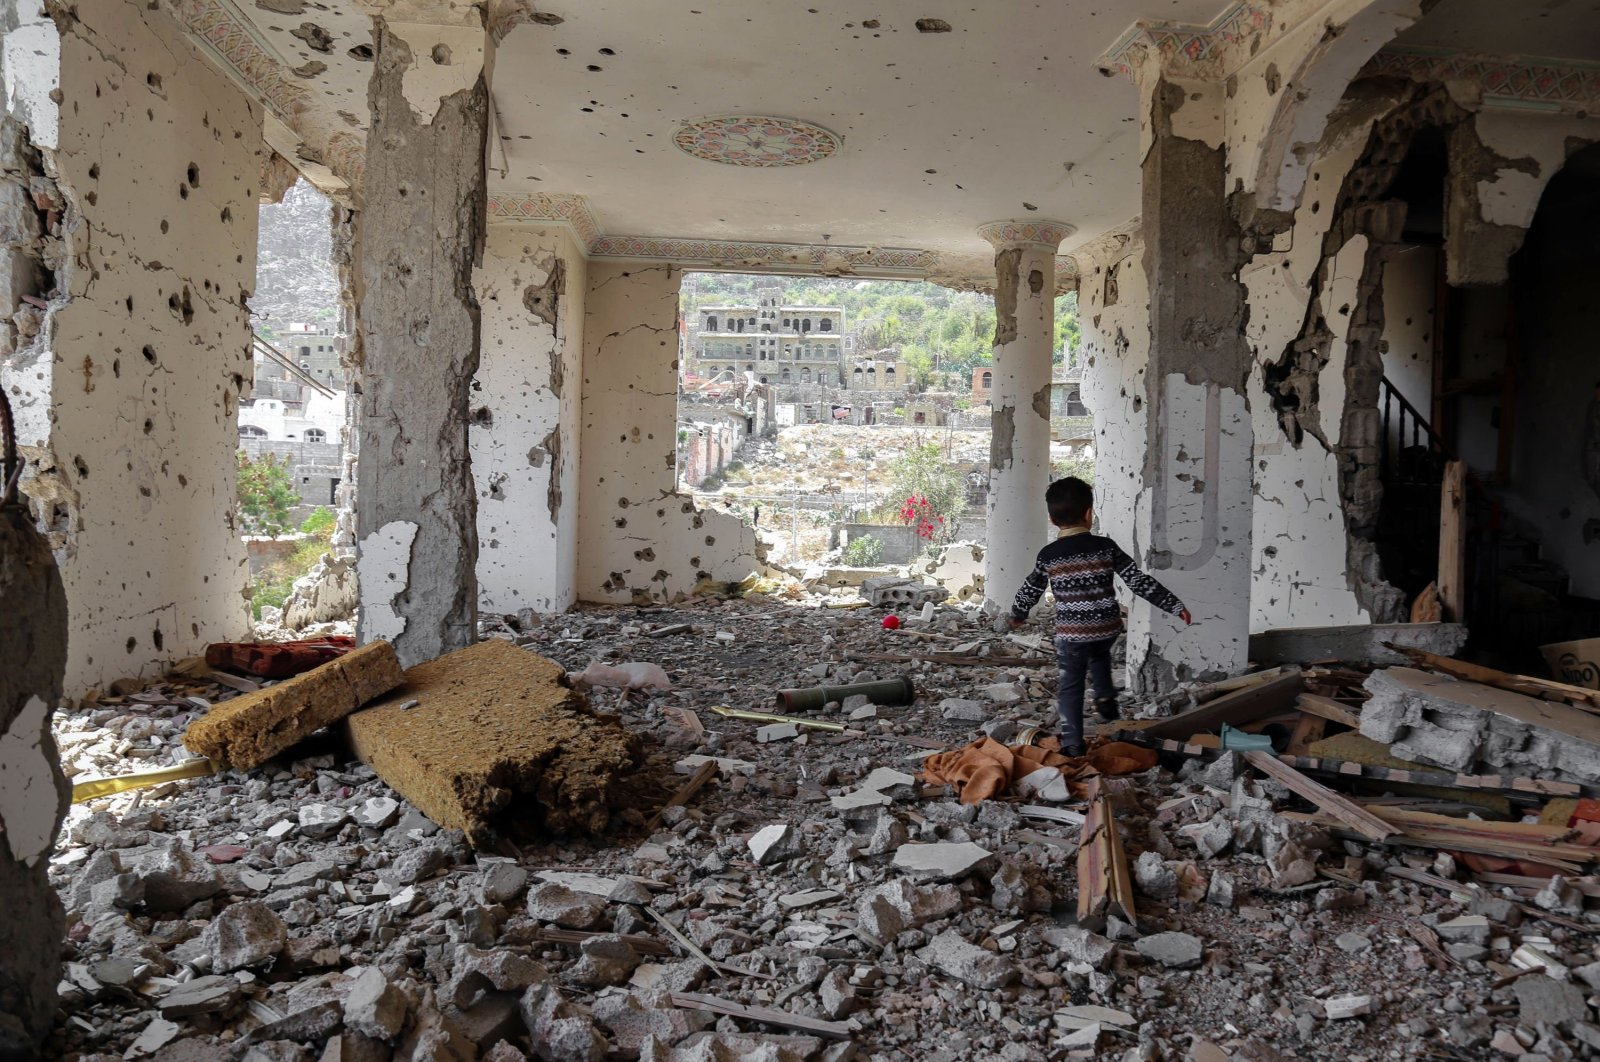 A Yemeni child walks in the rubble of a building that was destroyed by an air strike, Taez, March 18, 2018. (AFP Photo)